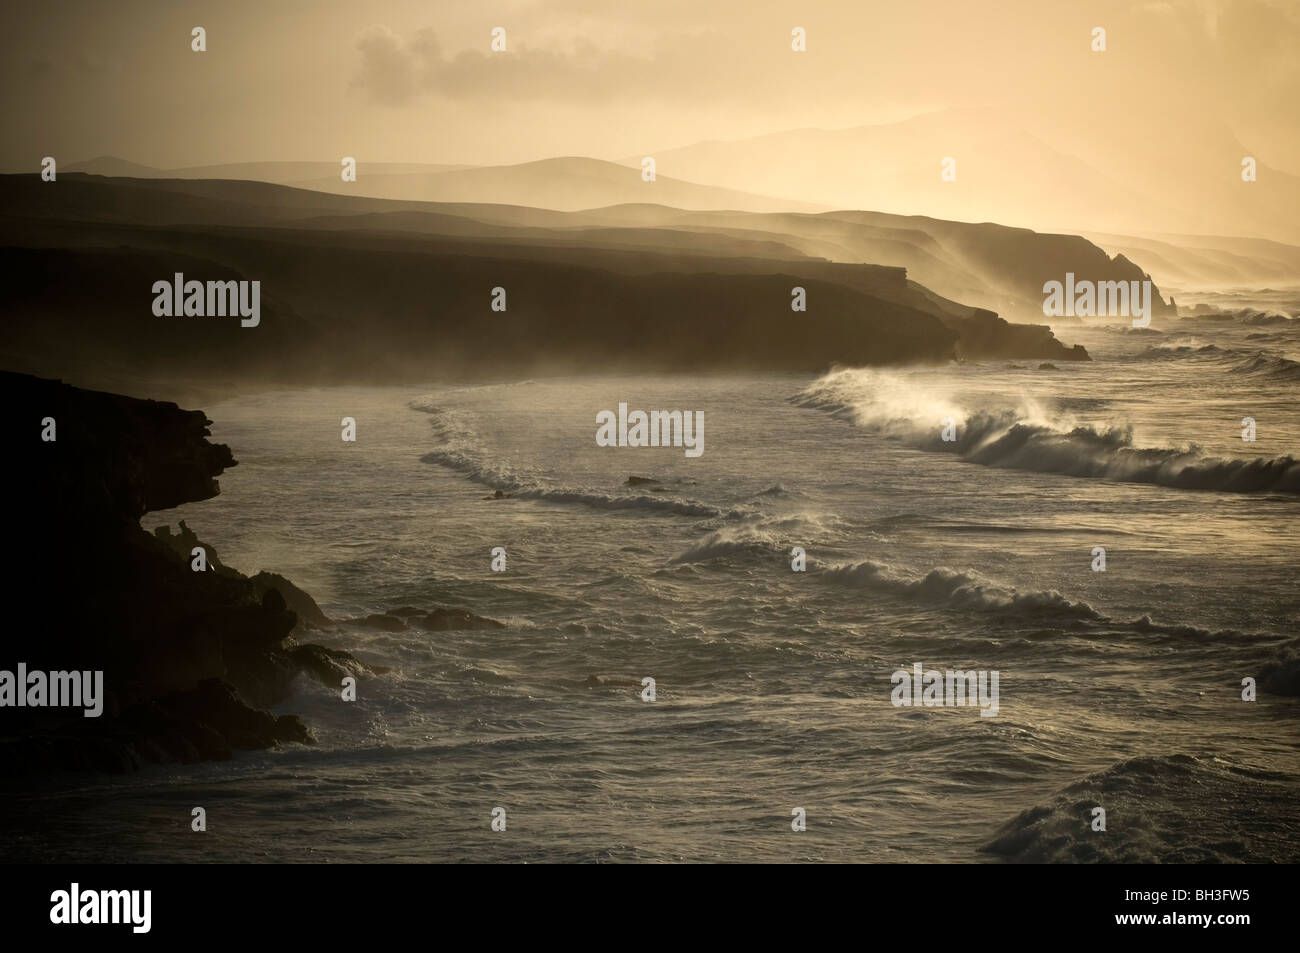 stormy sea seas seascape scape seascapes scapes drama dramatic heavy storms storm rough wave waves moody swell - Stock Image